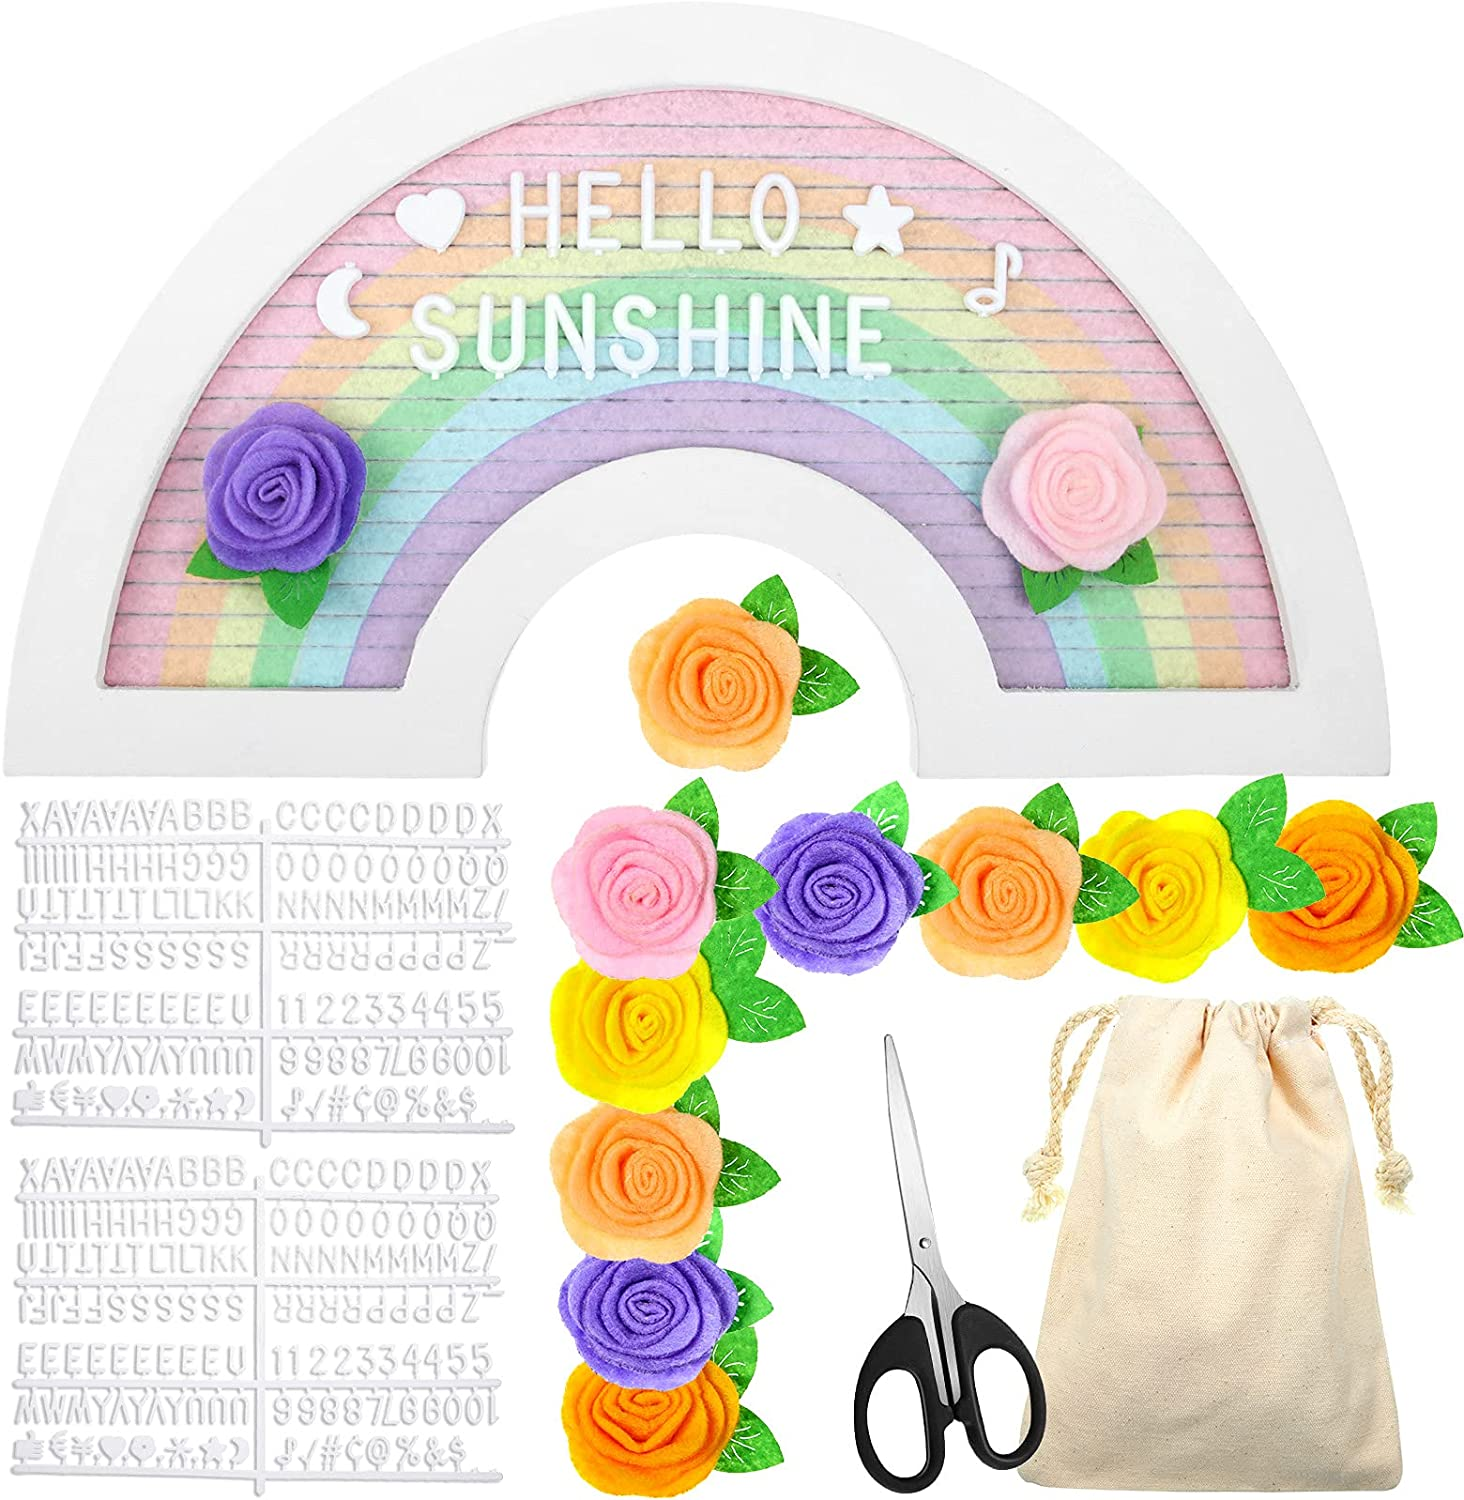 55% OFF Rainbow Limited time sale Flower Felt Letter Board Wooden Cha